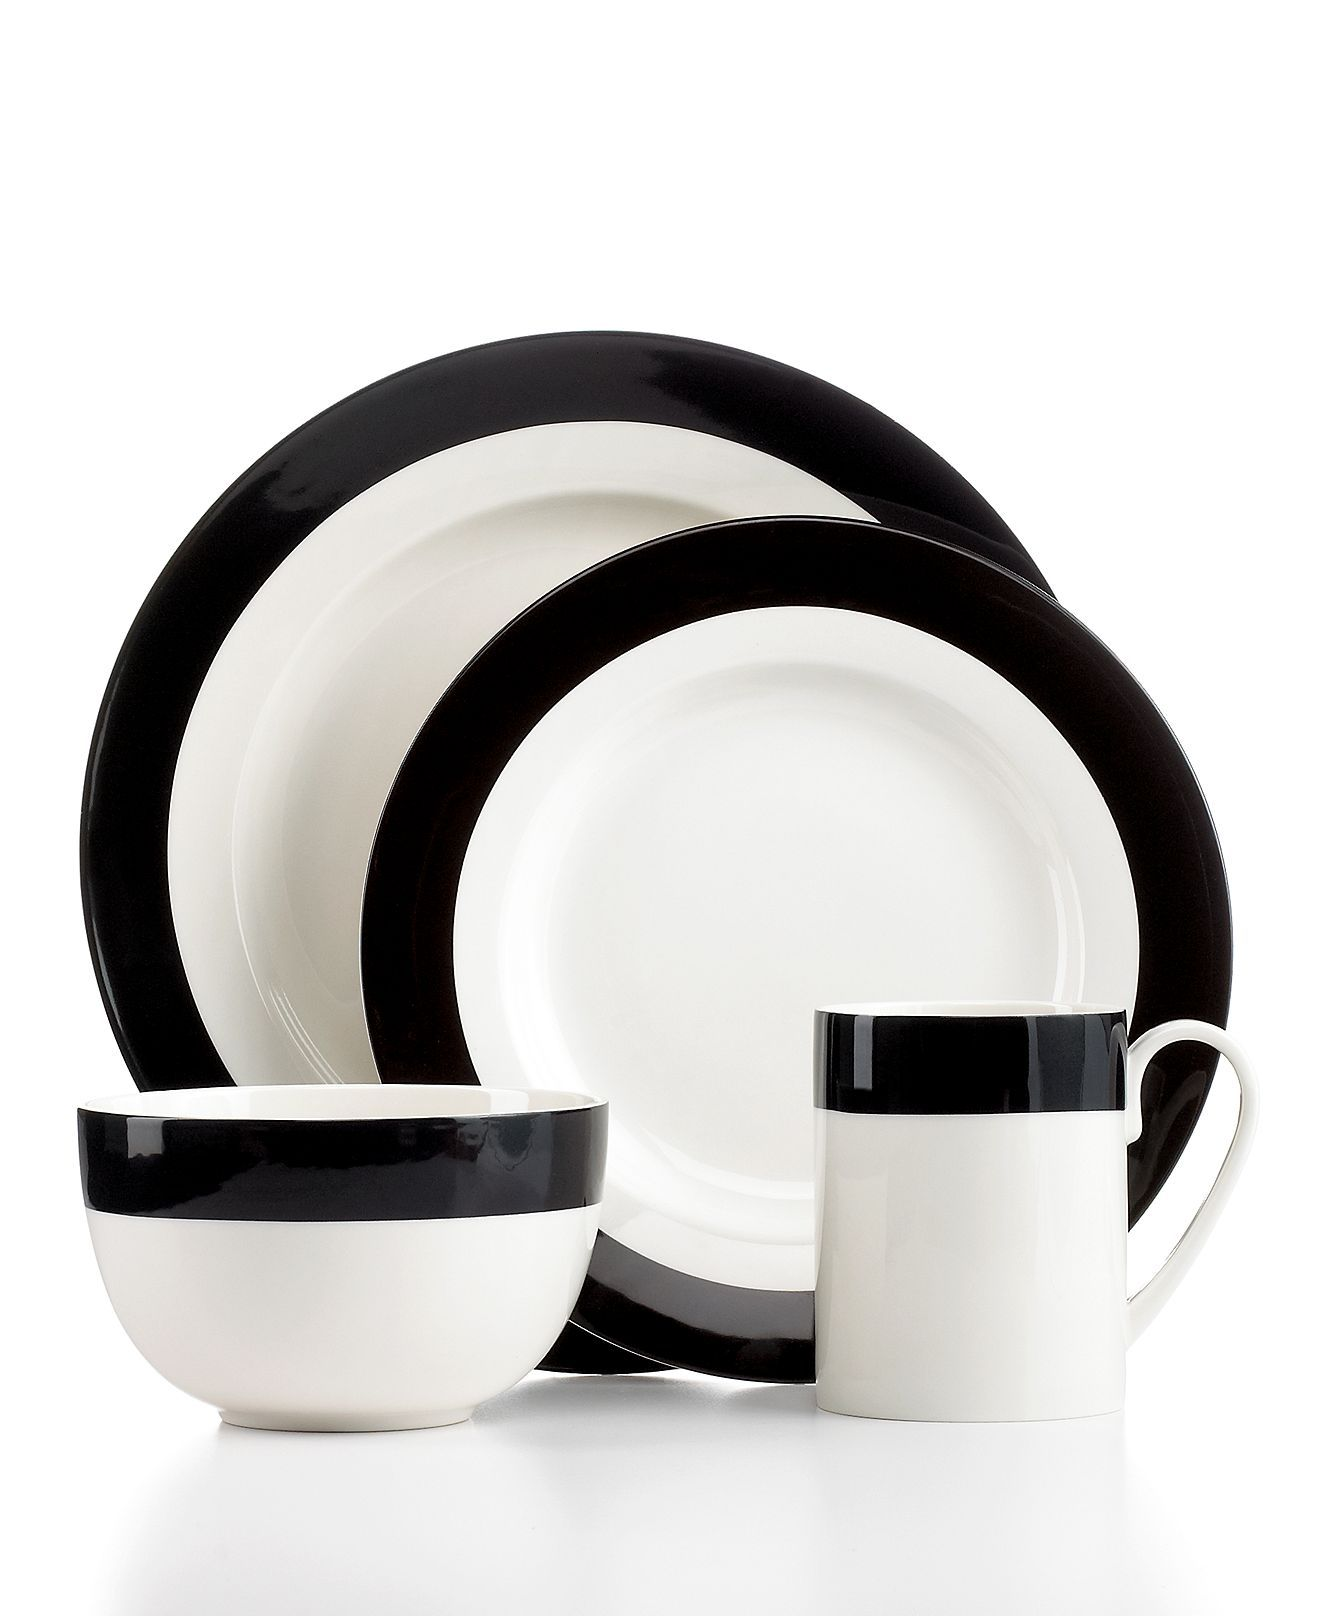 martha stewart collection dinnerware classic band black 4 piece place setting casual dinnerware